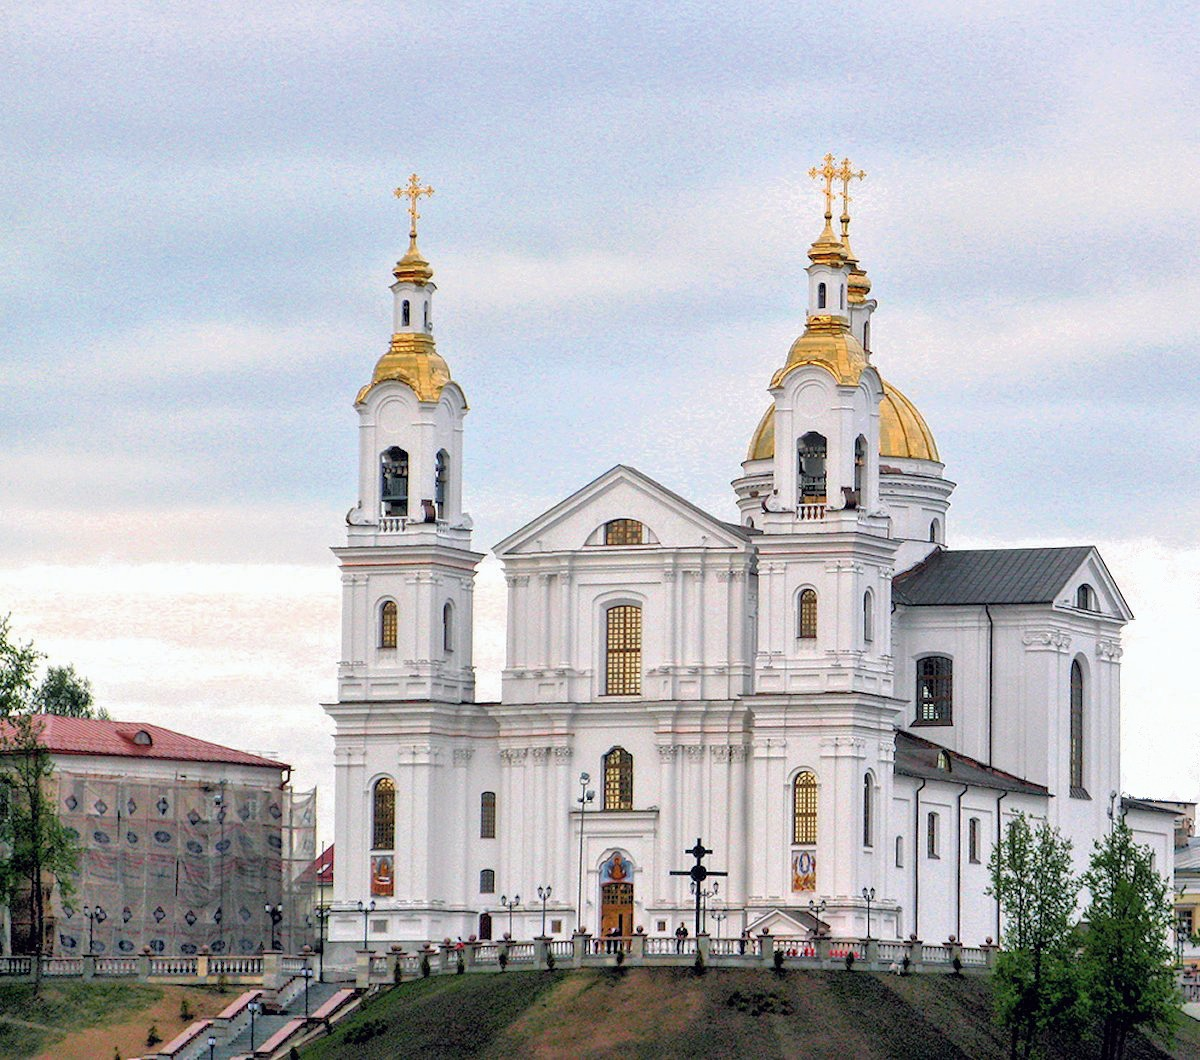 00 Cathedral of the Assumption. Vitebsk. 2011. 09.04.13